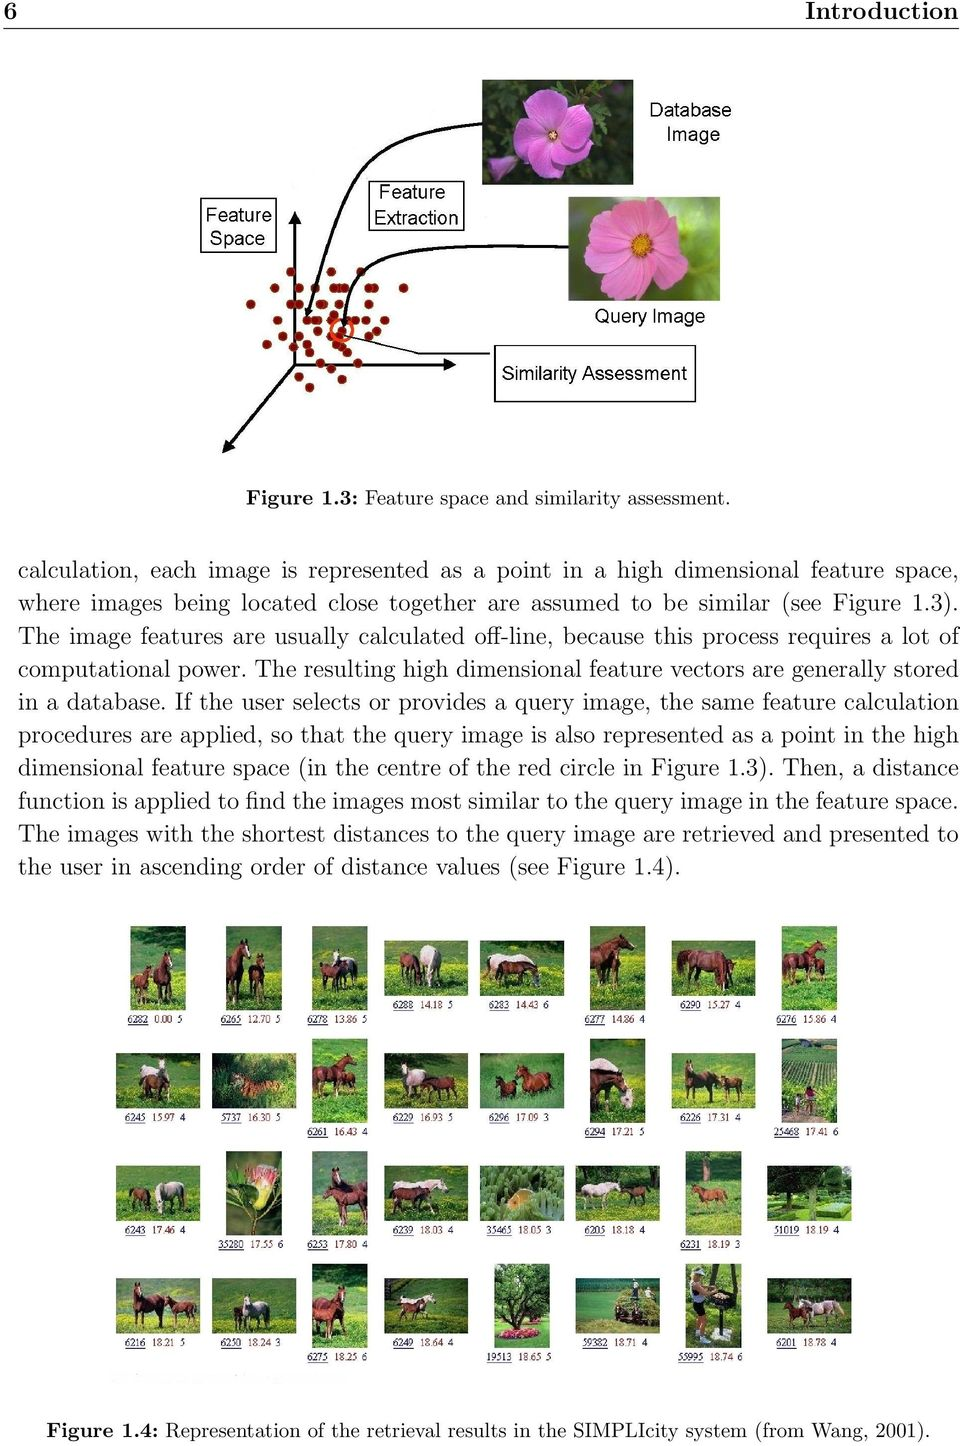 The image features are usually calculated off-line, because this process requires a lot of computational power. The resulting high dimensional feature vectors are generally stored in a database.